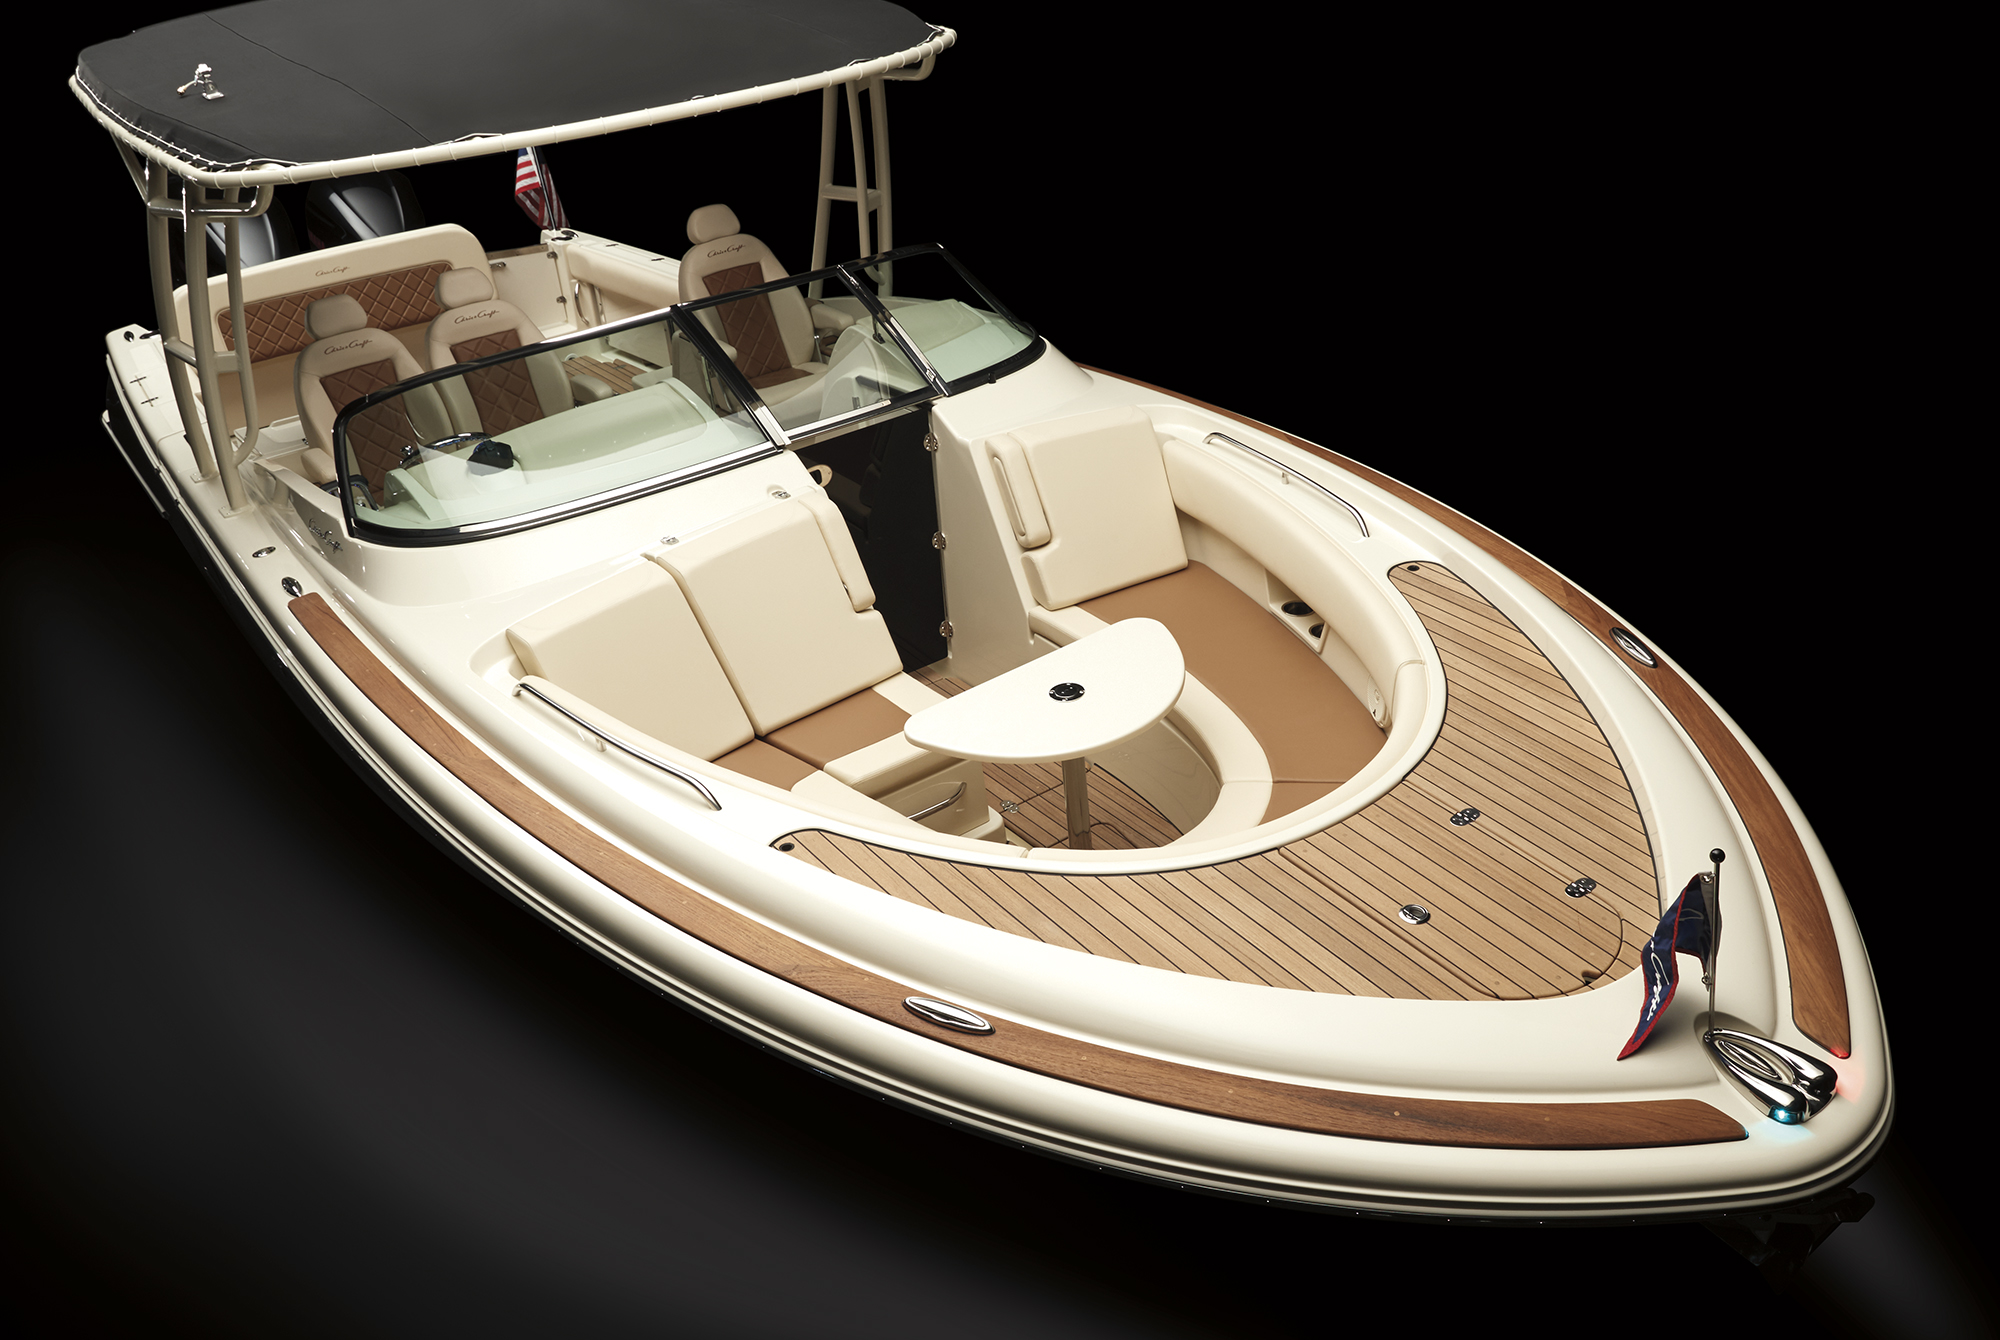 Wiring Diagram For Chris Craft Simple Crusader Boat Wire Diagrams Deck Schematic 270 Engine Calypso 30